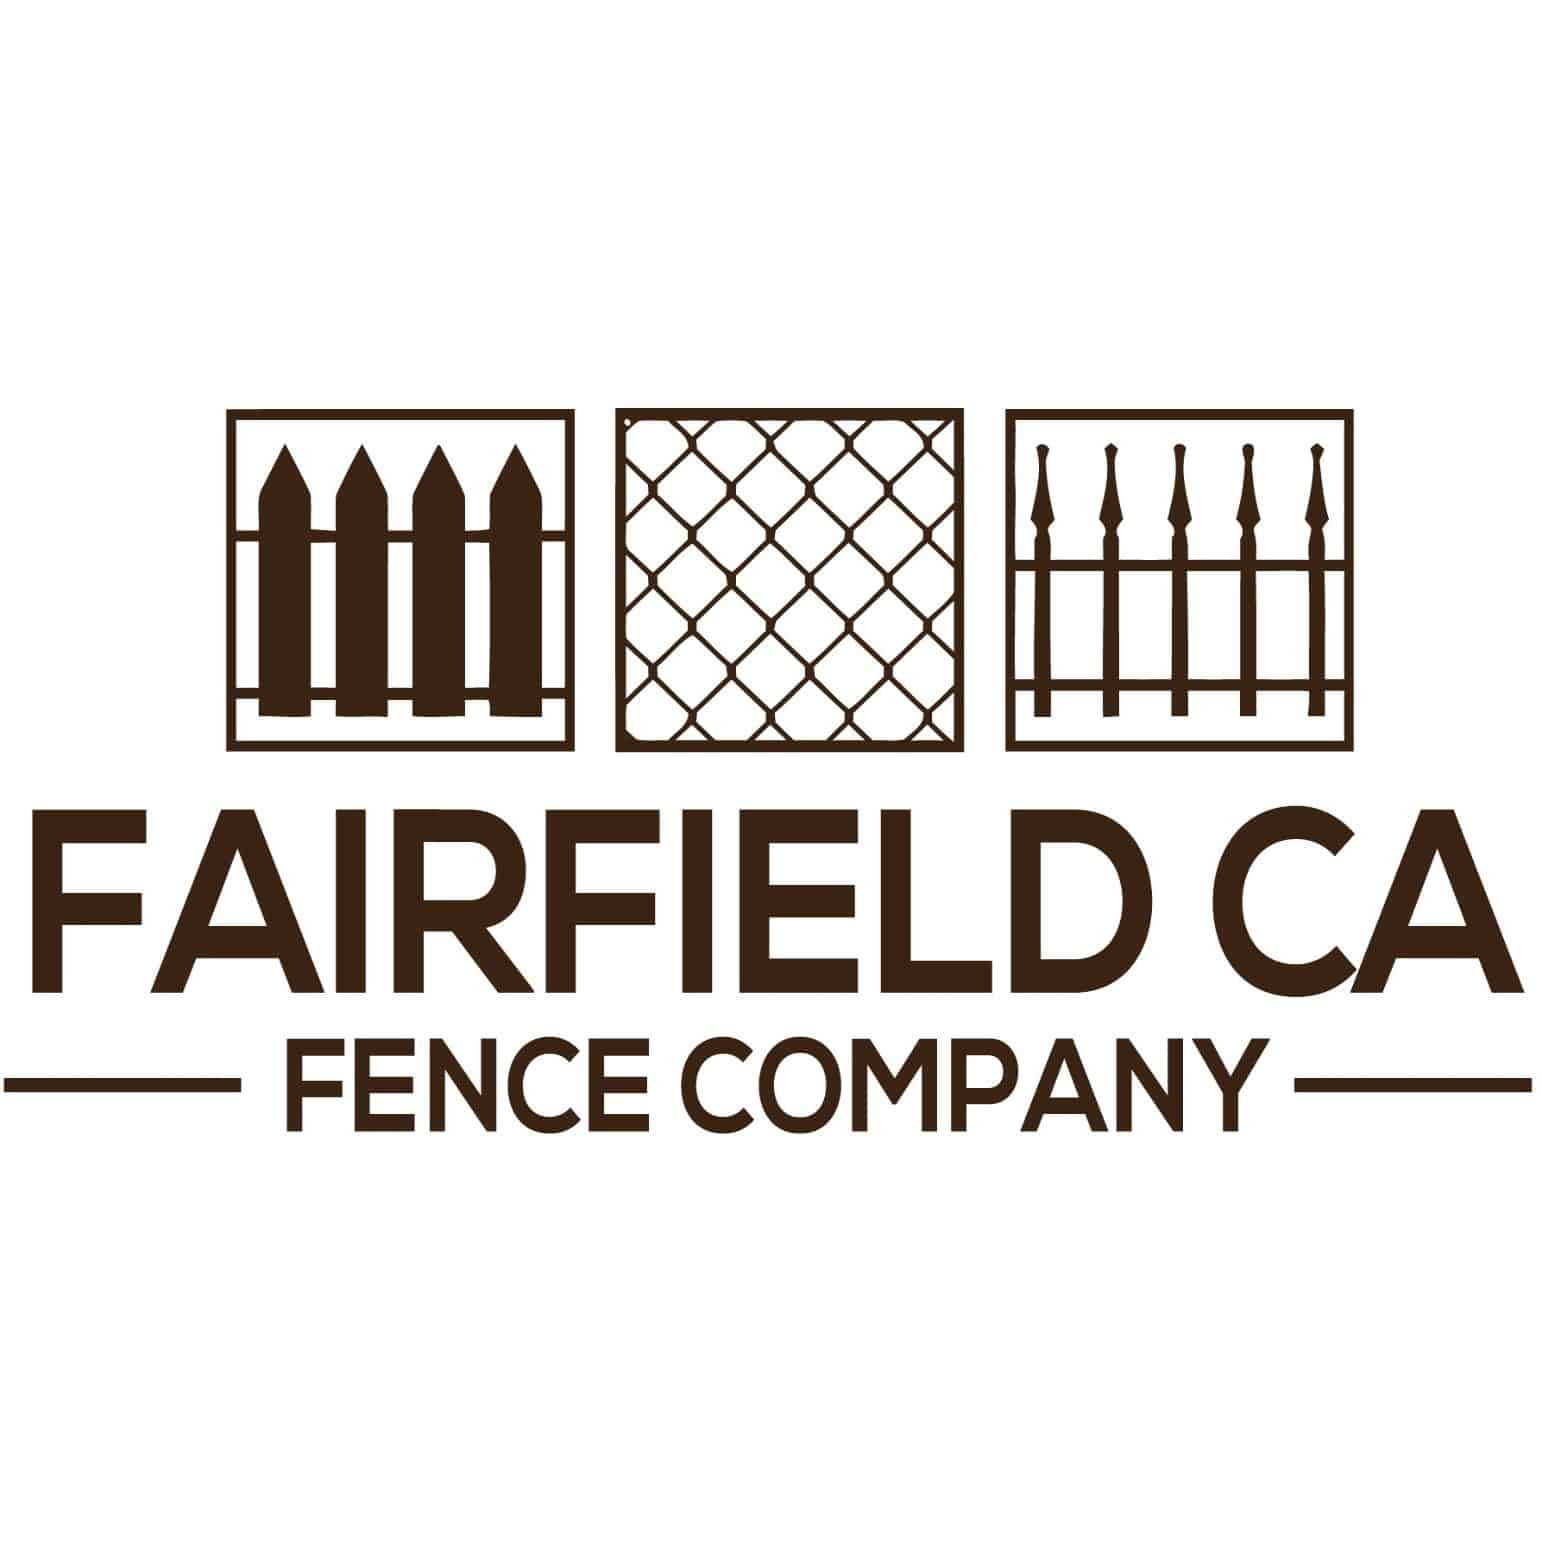 Fairfield CA Fence Co square logo